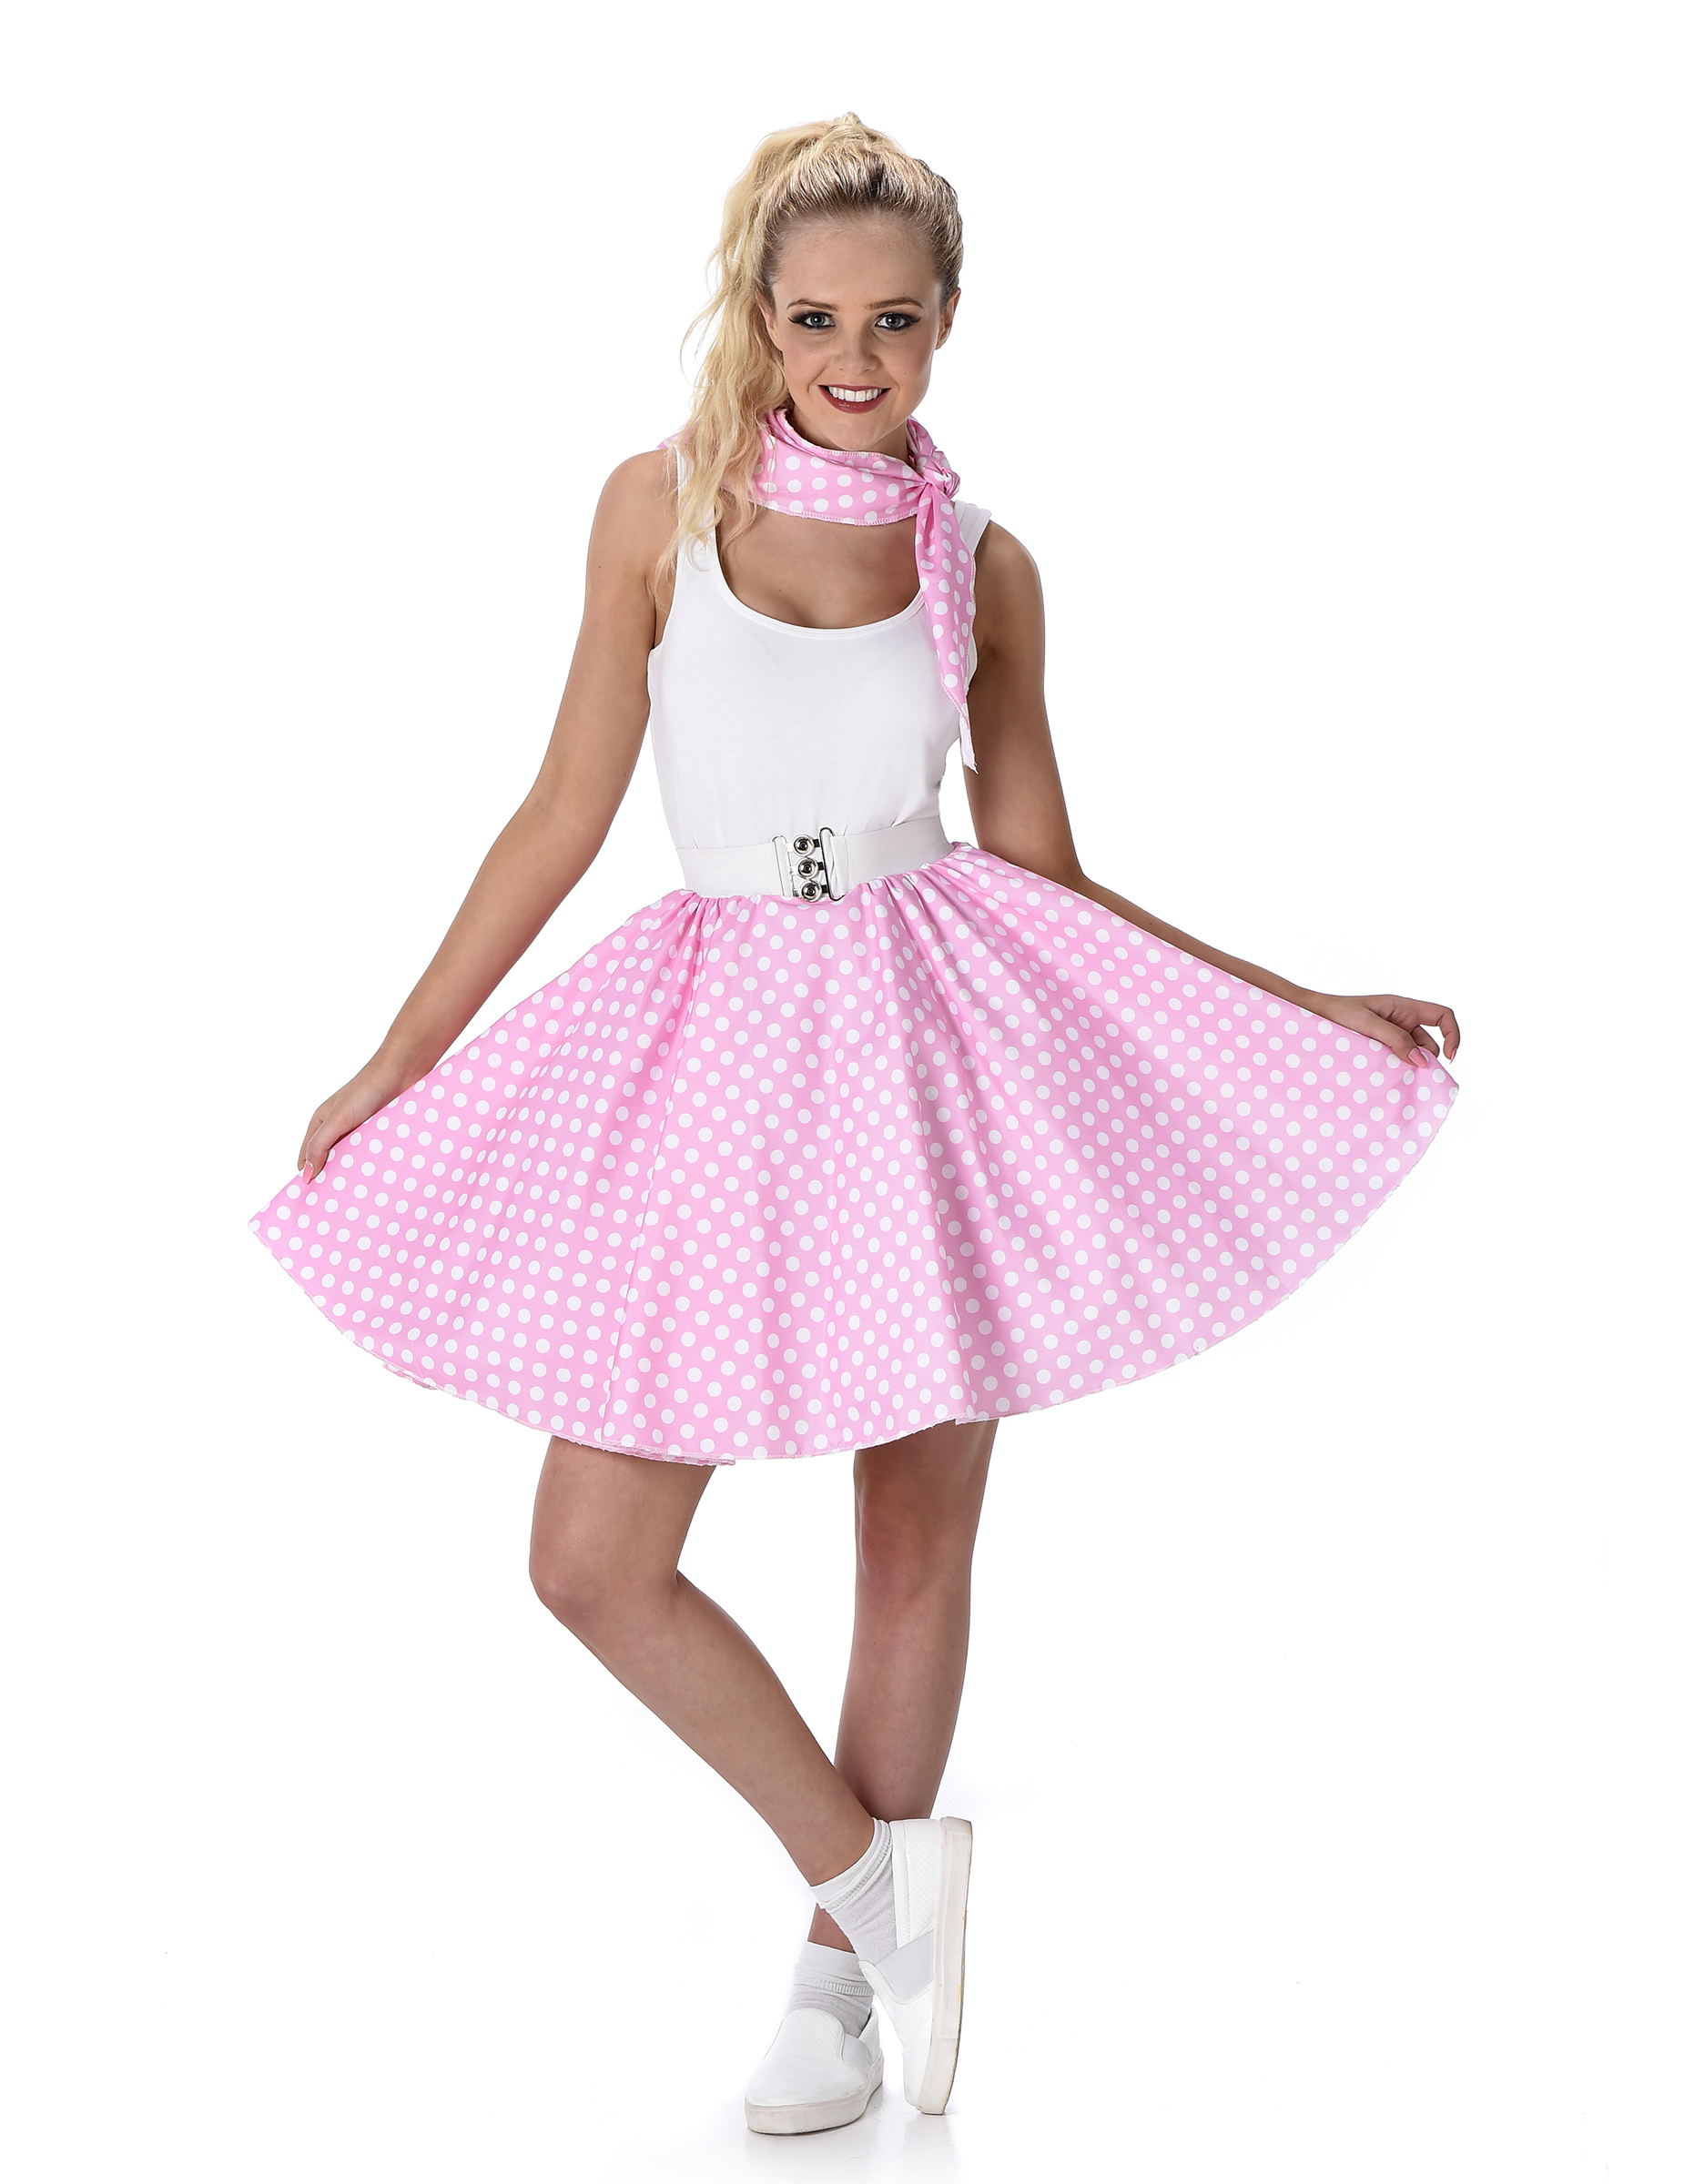 Costume rosa a pois anni 50 donna Costume rosa a pois anni 50 donna. GUIRCA  Costume vestito anni  u002750 grease carnevale halloween ... 300d95dc499